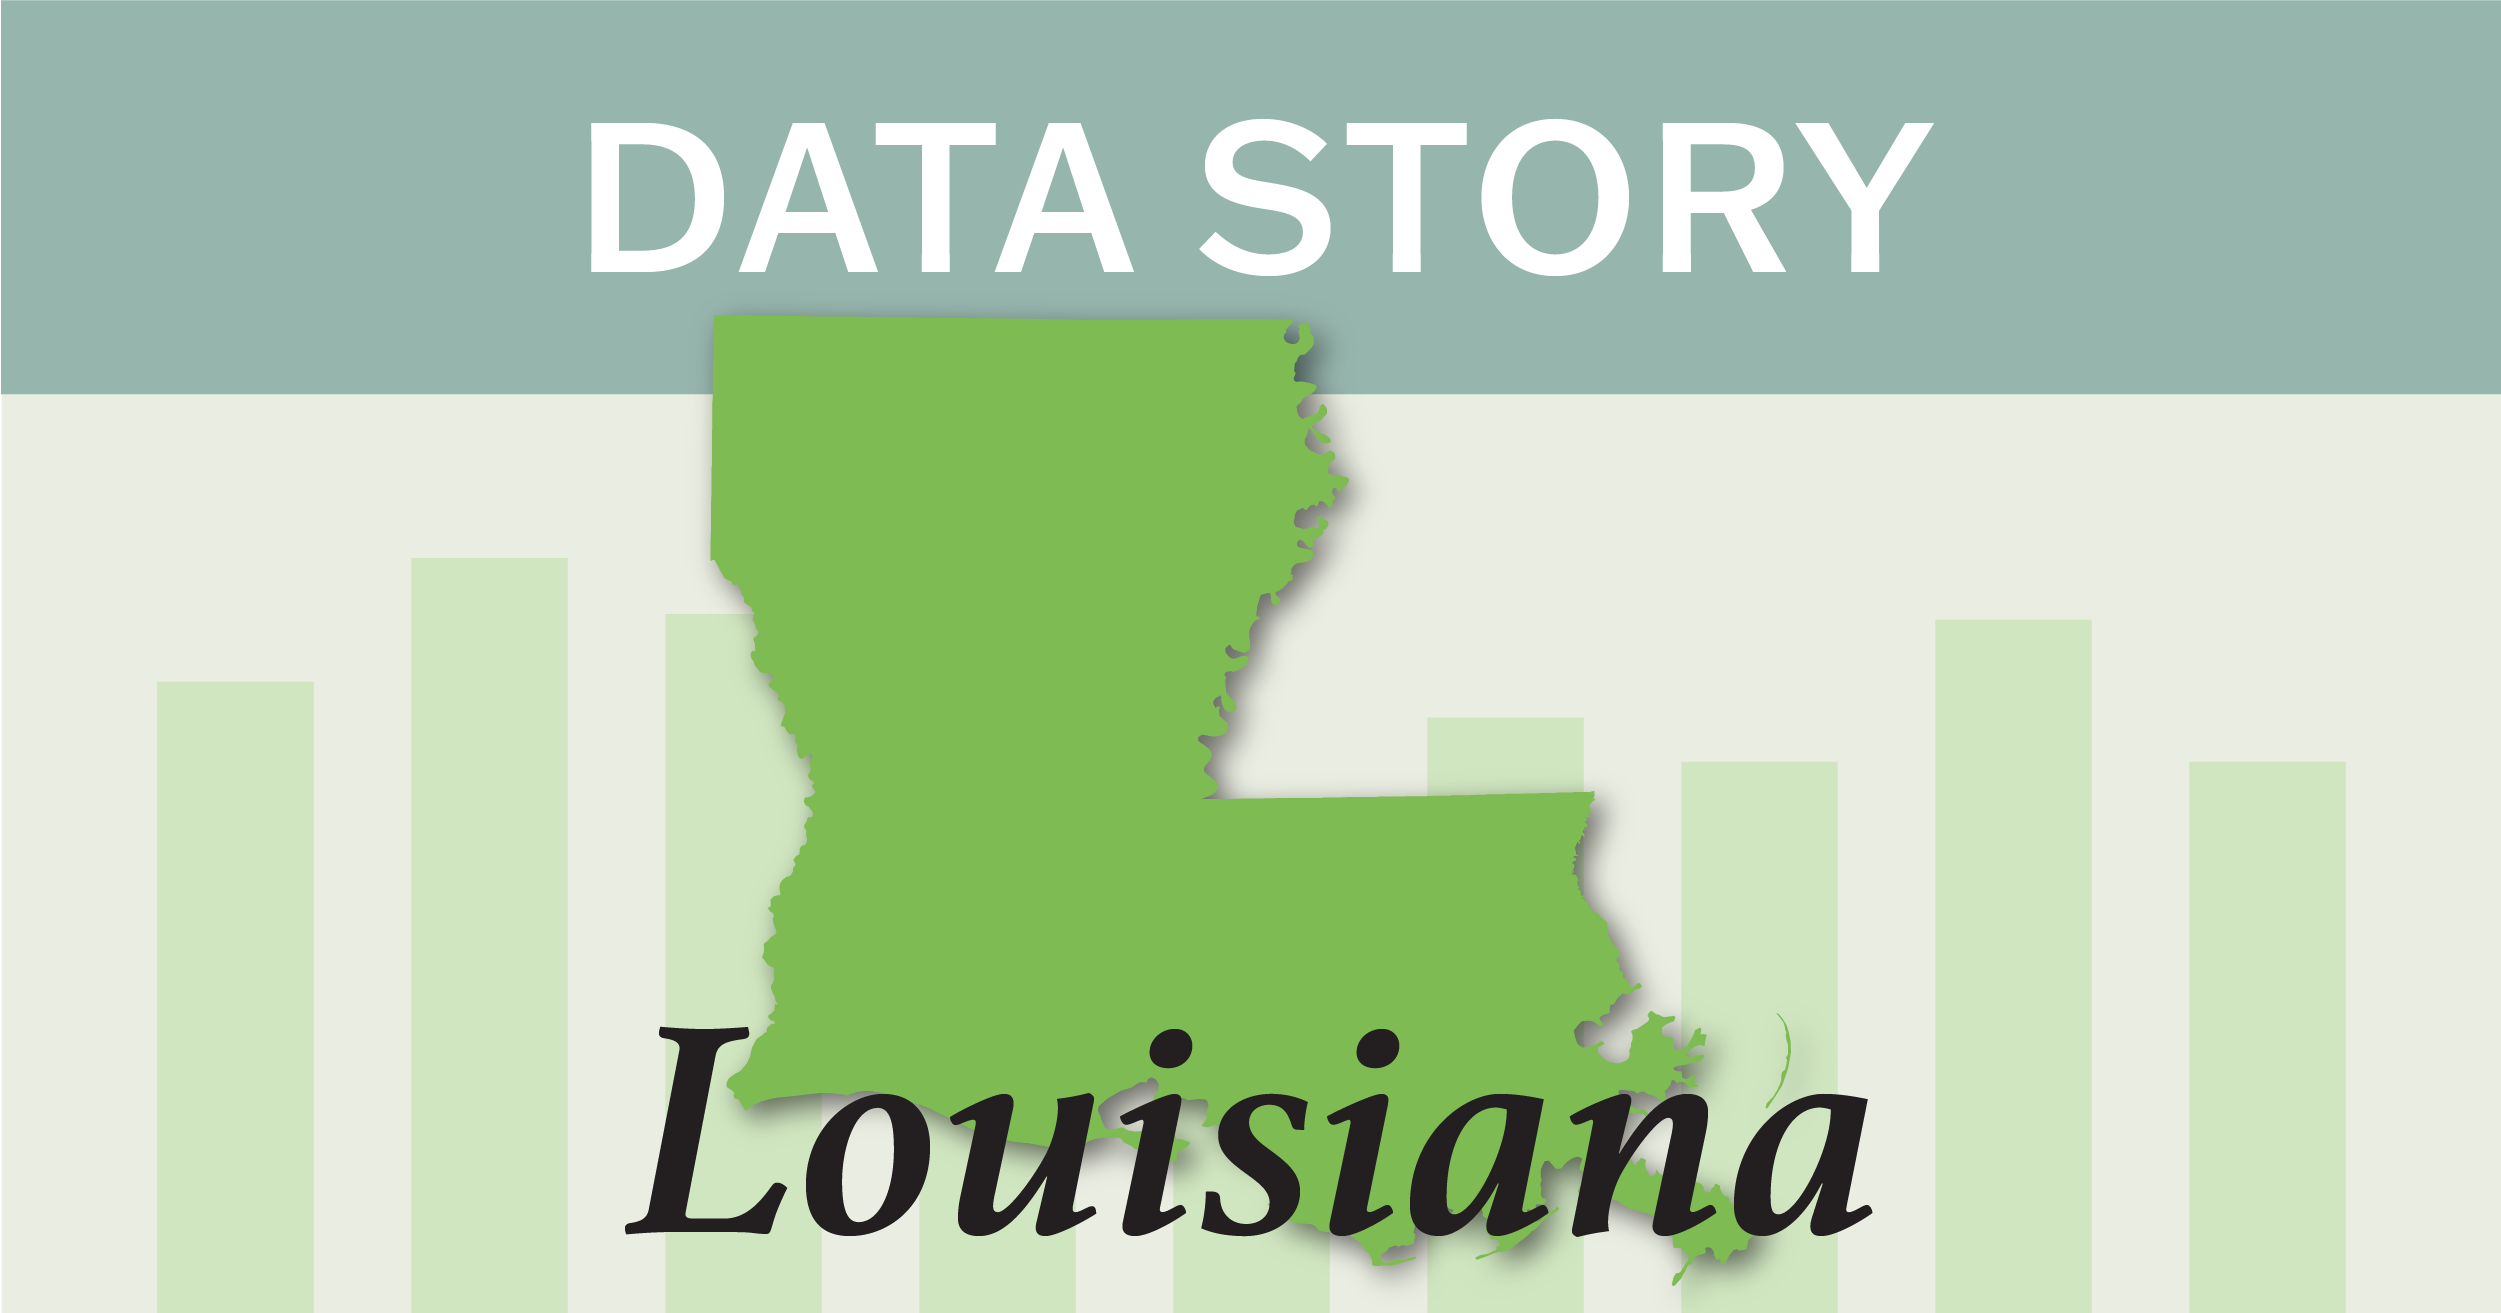 Outline of the state of Louisiana.